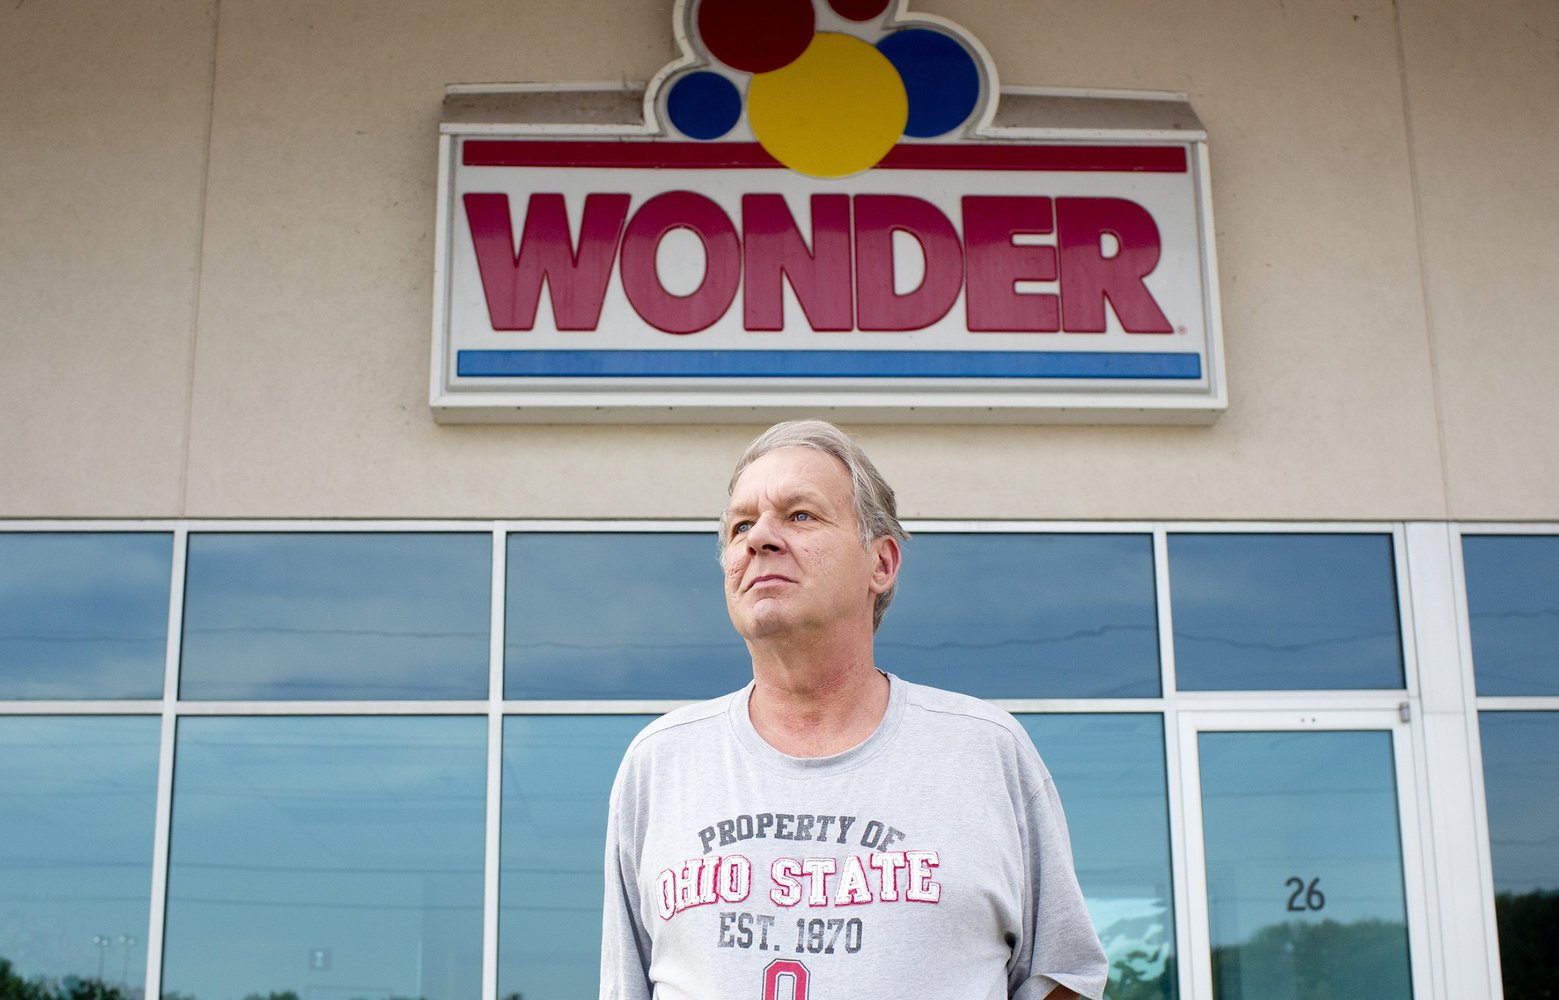 Mark Popovich, 58, who lost his job when Hostess closed a plant in his town, in Northwood, Ohio, Oct. (Laura McDermott/The New York Times)